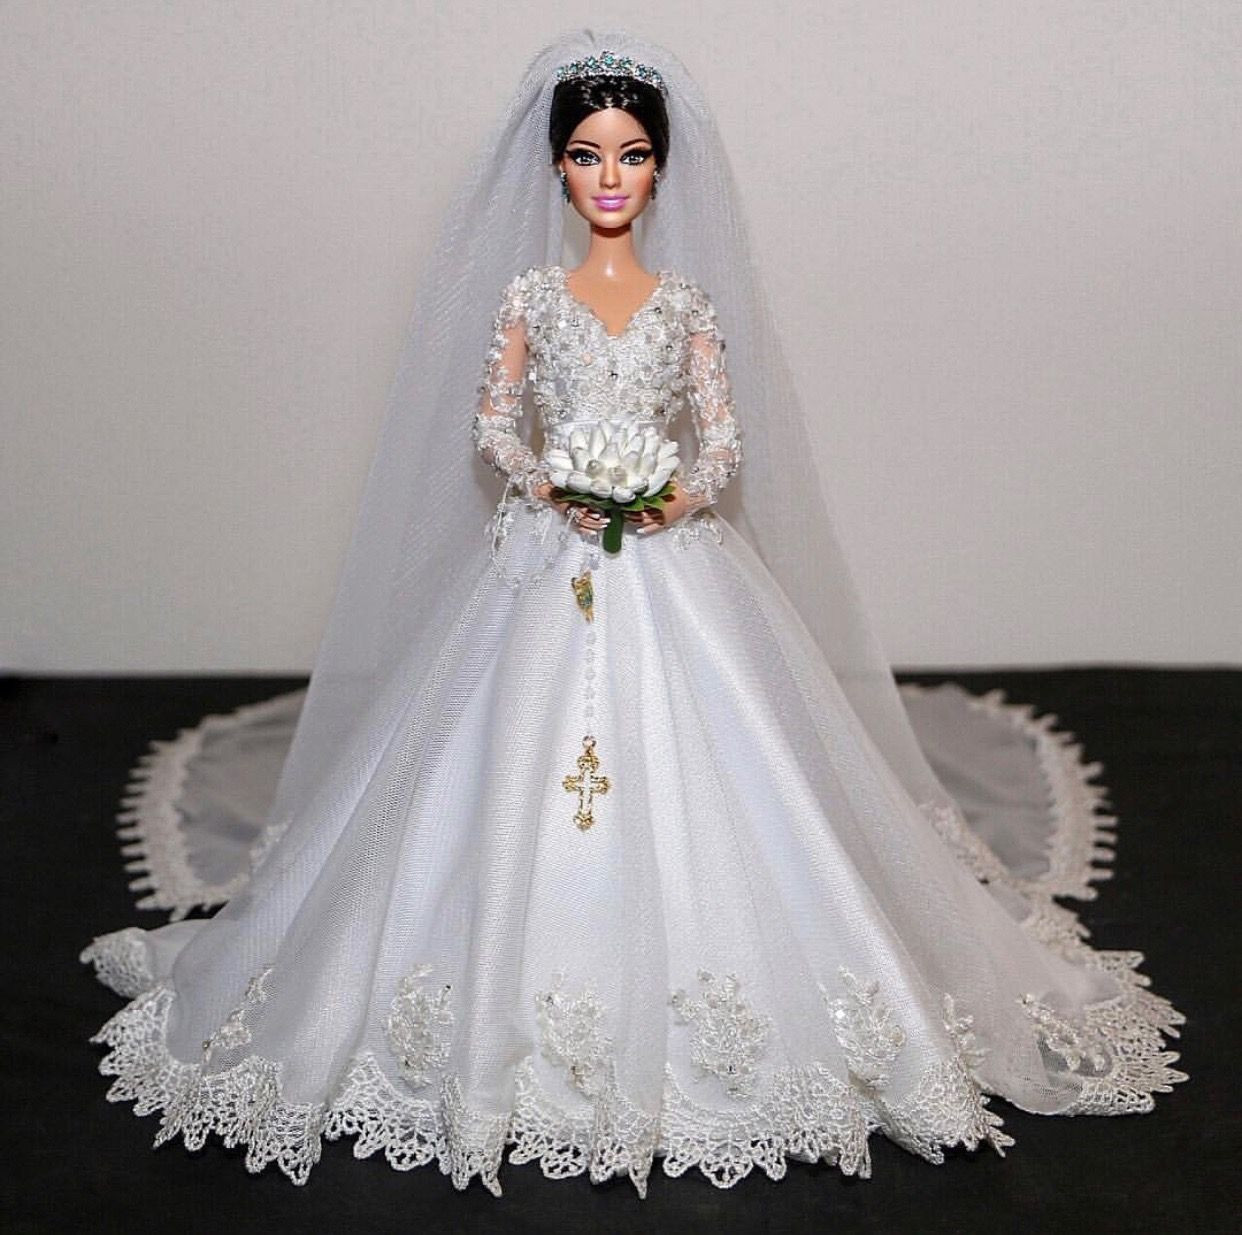 Barbie Hochzeitskleid  1 2 sammurakammi Barbie Doll Brides 2